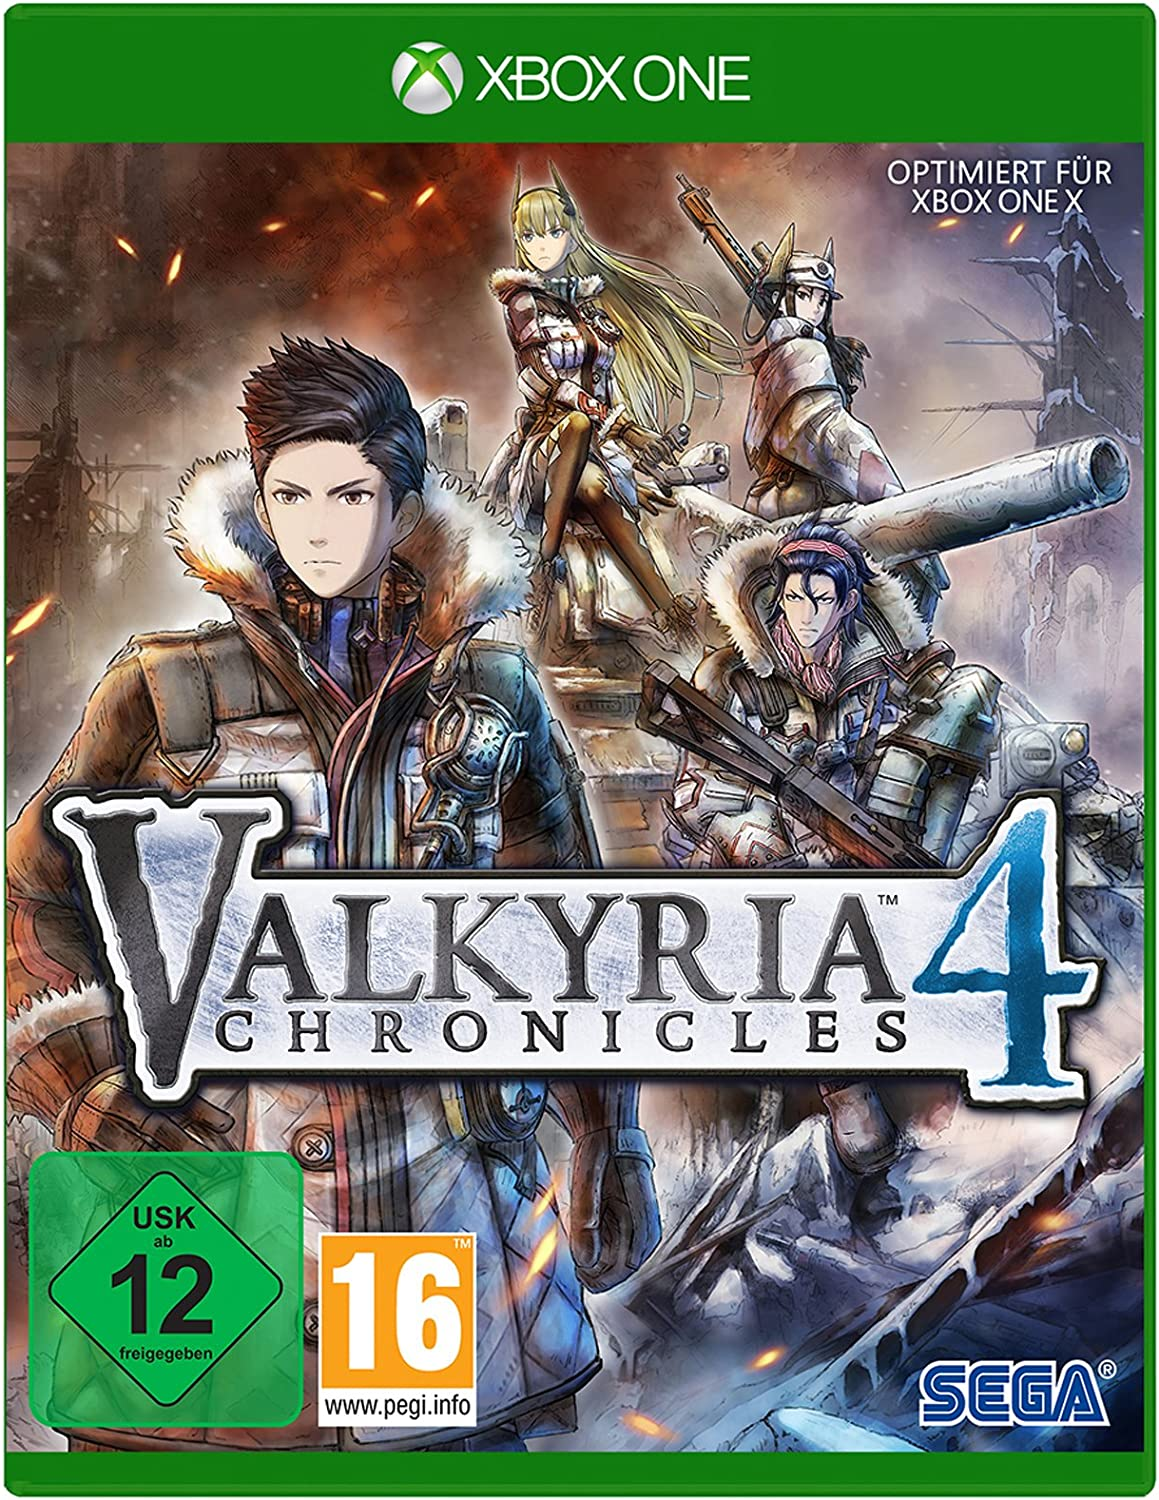 GAME Valkyria Chronicles 4, Xbox One vídeo - Juego (Xbox One, Xbox One, TRPG (Tactical Role-Playing Game), T (Teen)): Amazon.es: Videojuegos